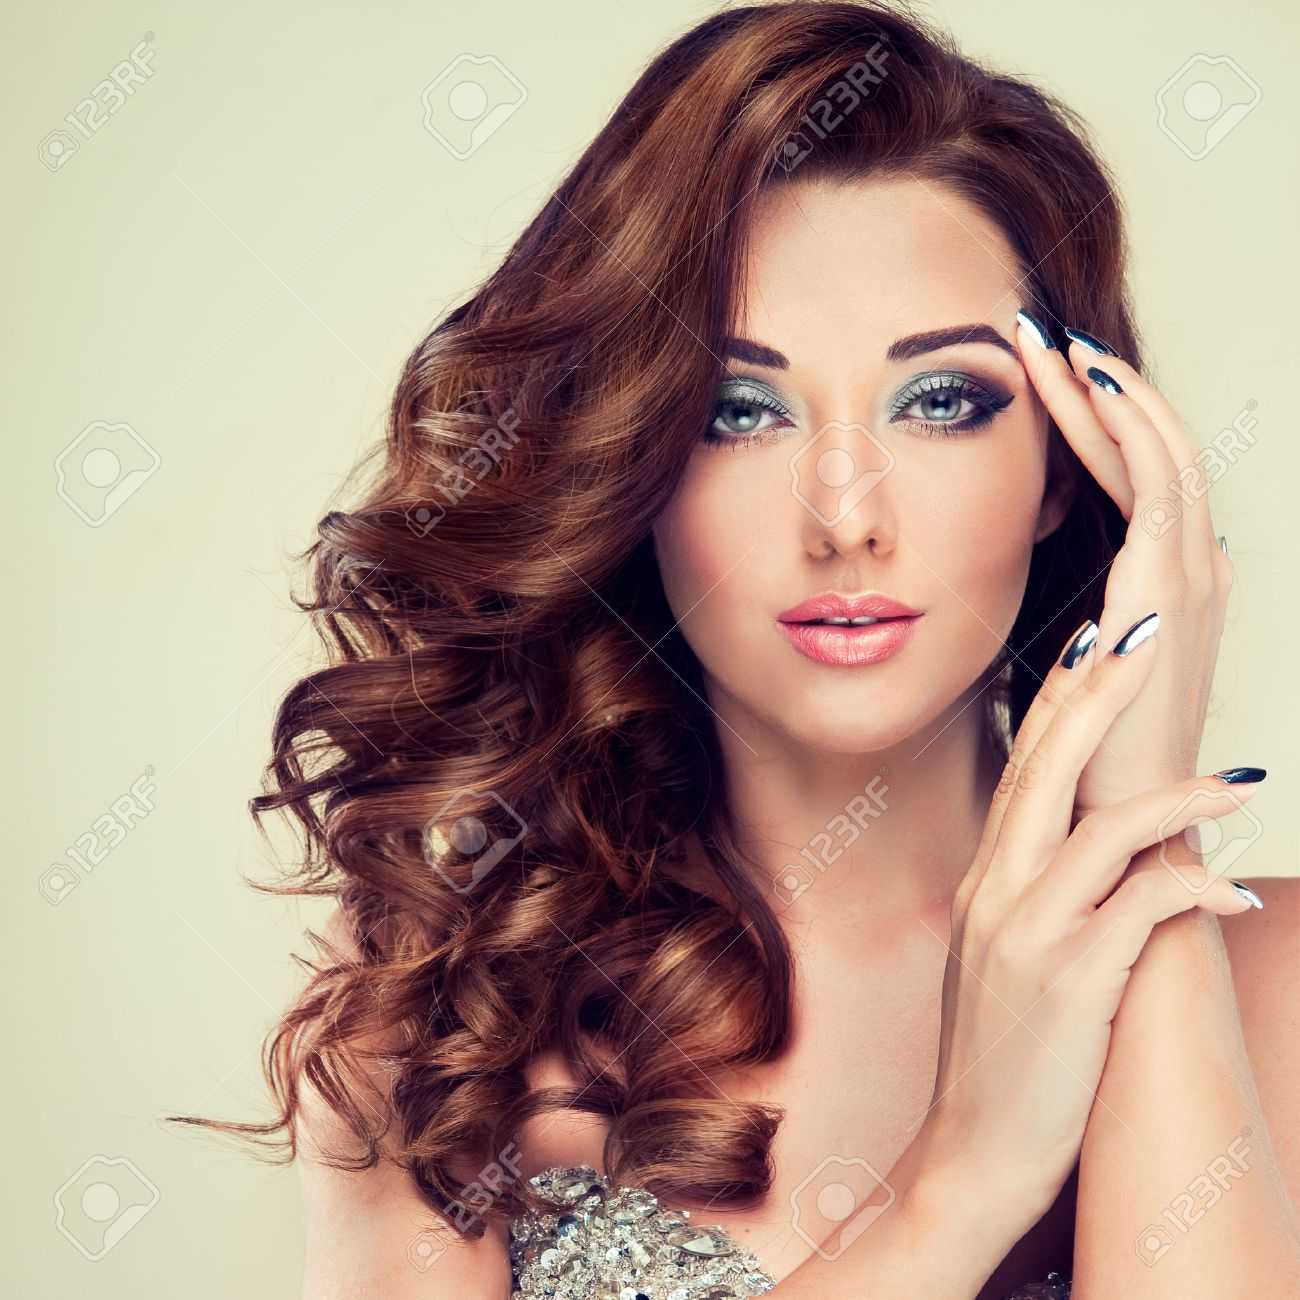 Beautiful model with long curly hair fashion makeup and silver nails Stock Photo - 40147711